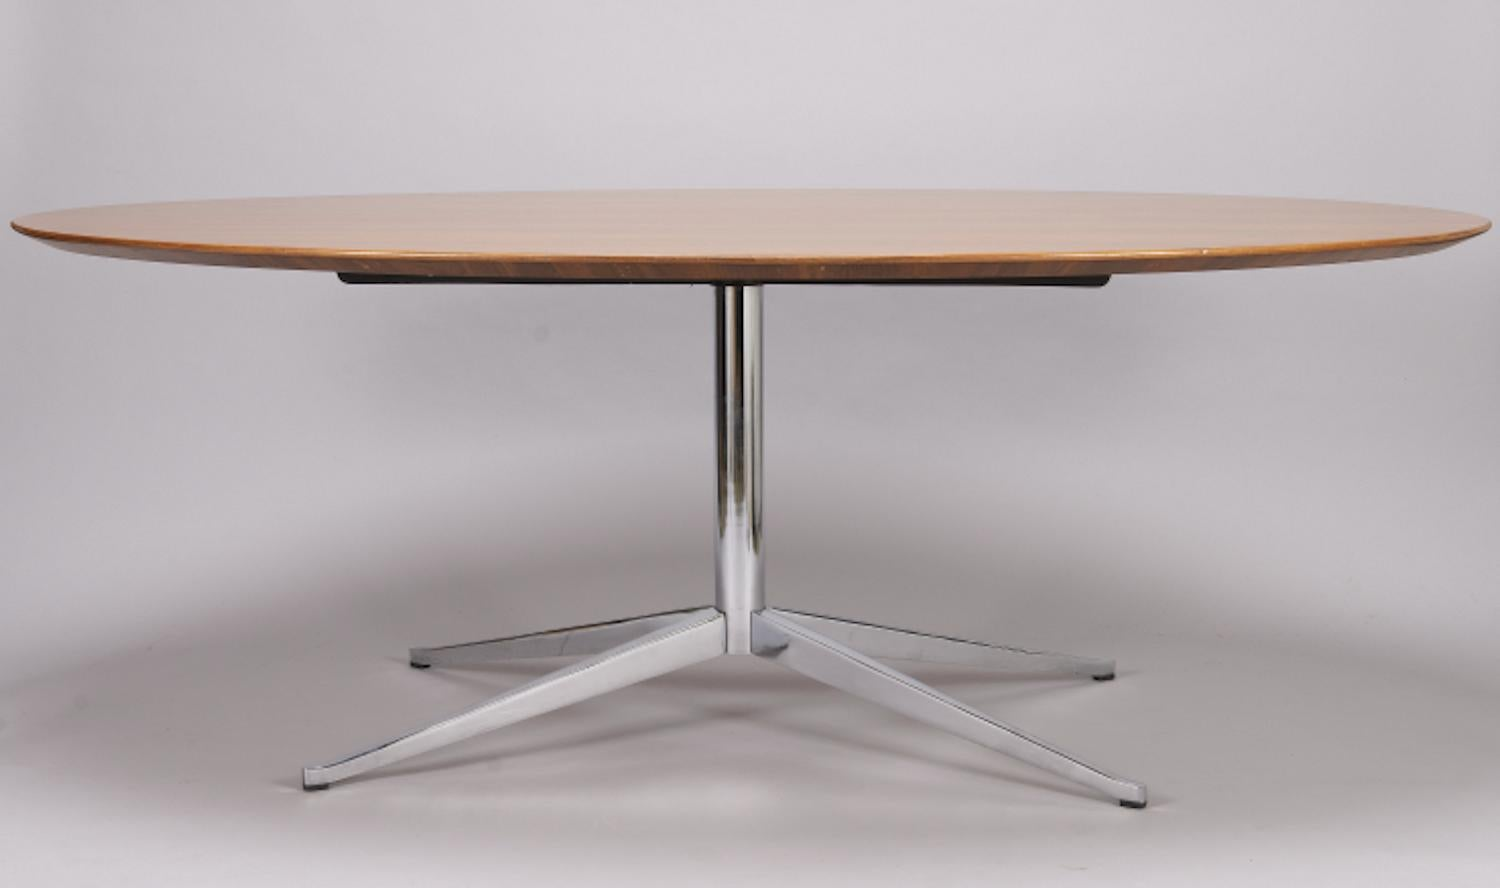 Table Florence Knoll Prix beautiful florence knoll oval table or desk at 1stdibs